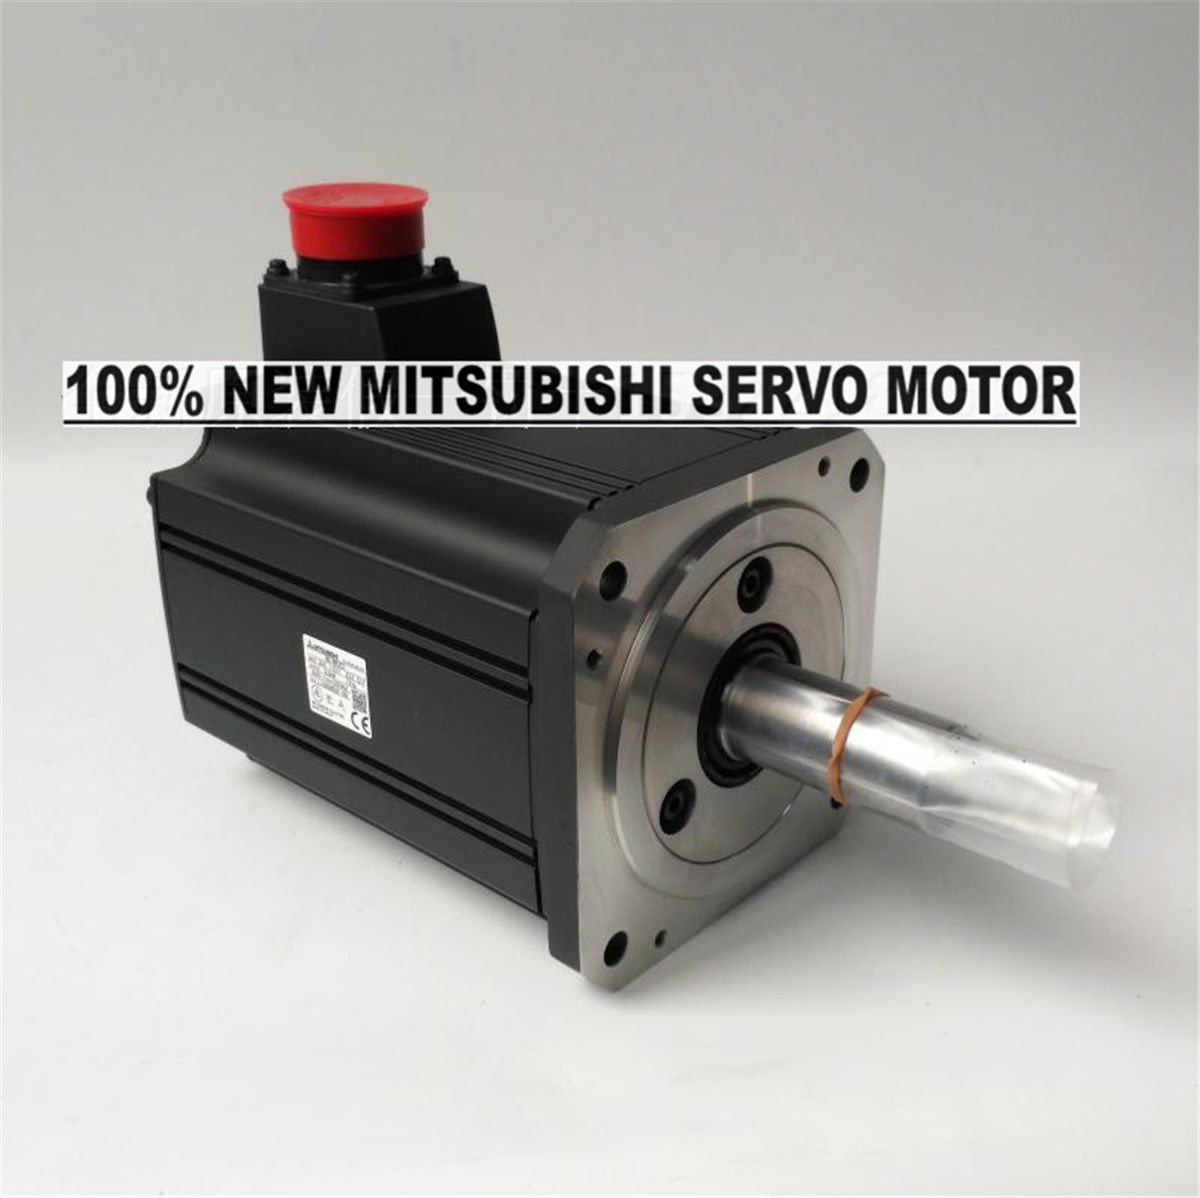 NEW  Mitsubishi Servo Motor HG-RR353 in box HGRR353